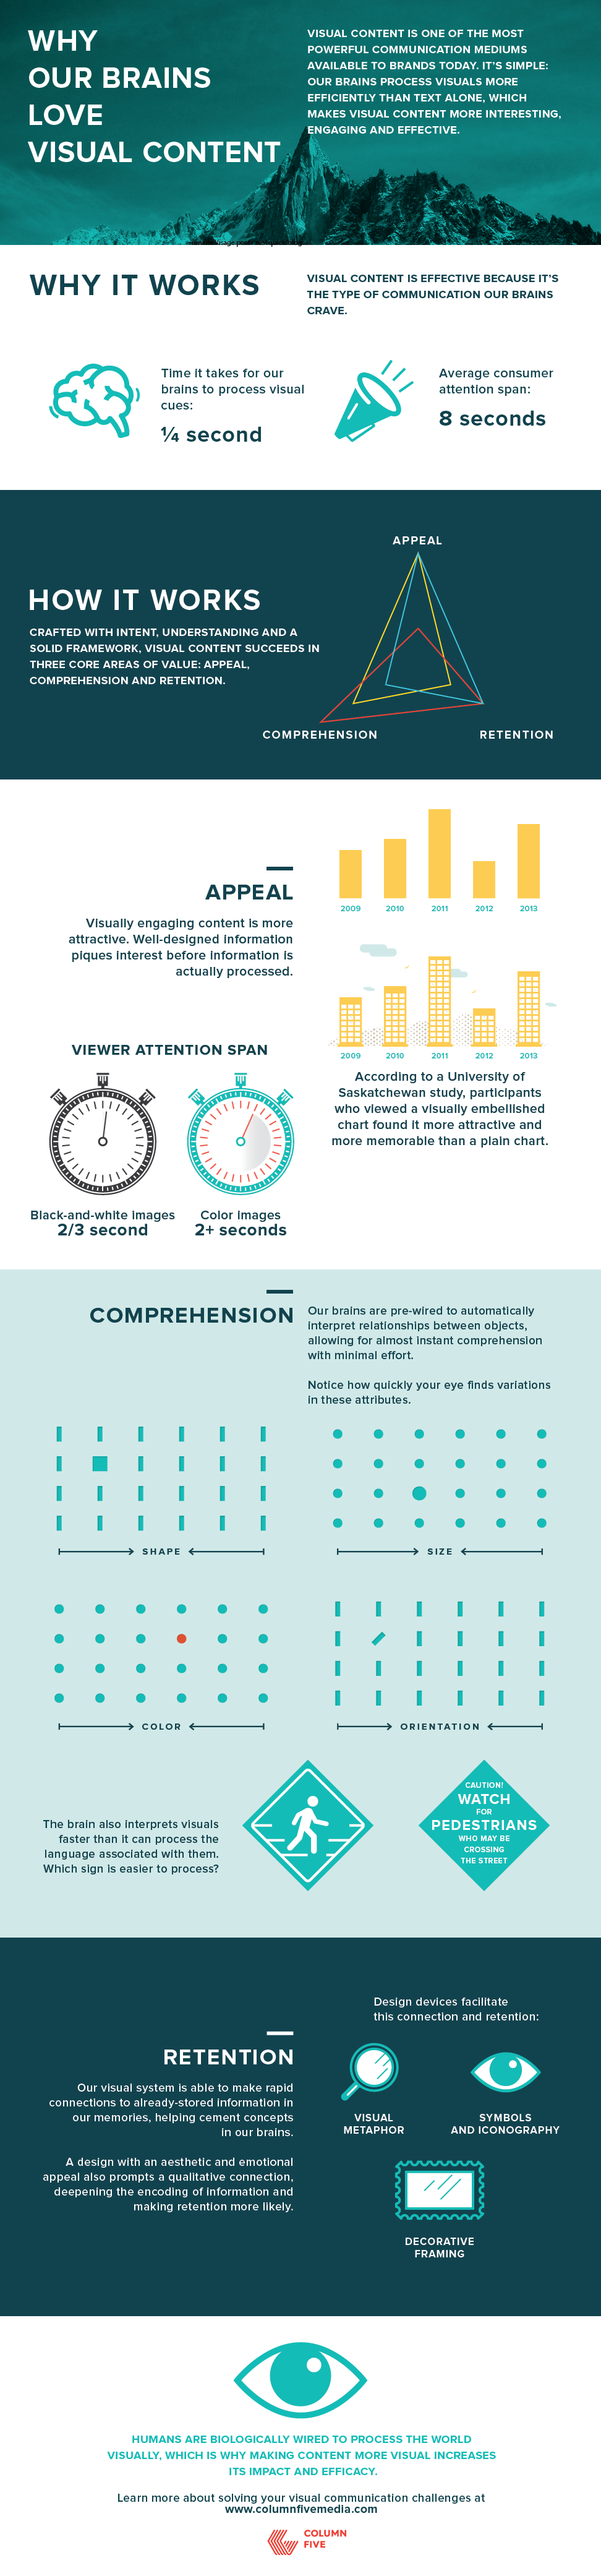 Why Visual Content Pleases the Human Brain (Infographic)